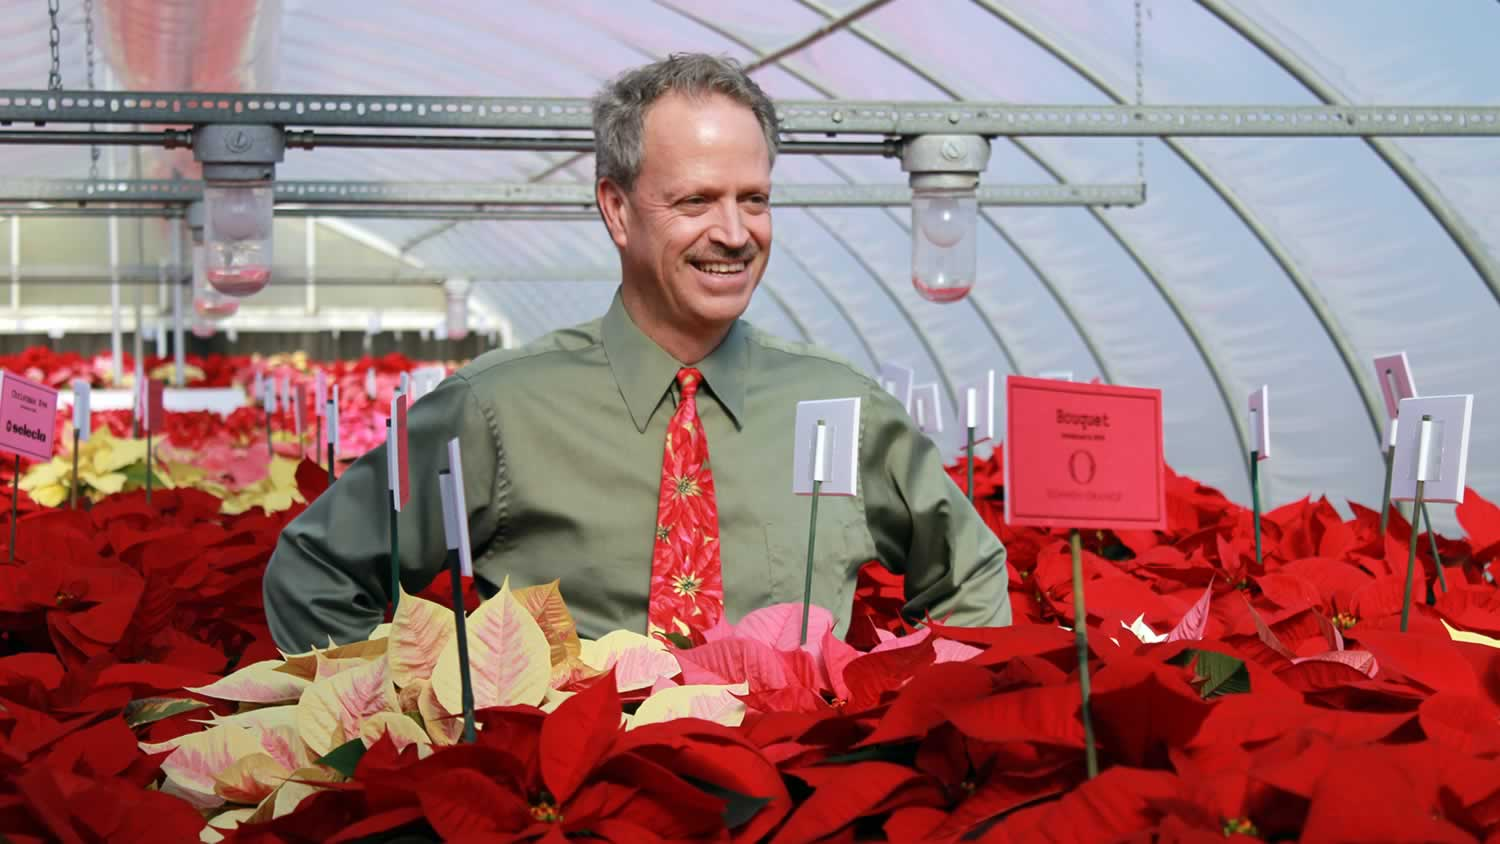 A man standing behind poinsettias in a greenhouse.